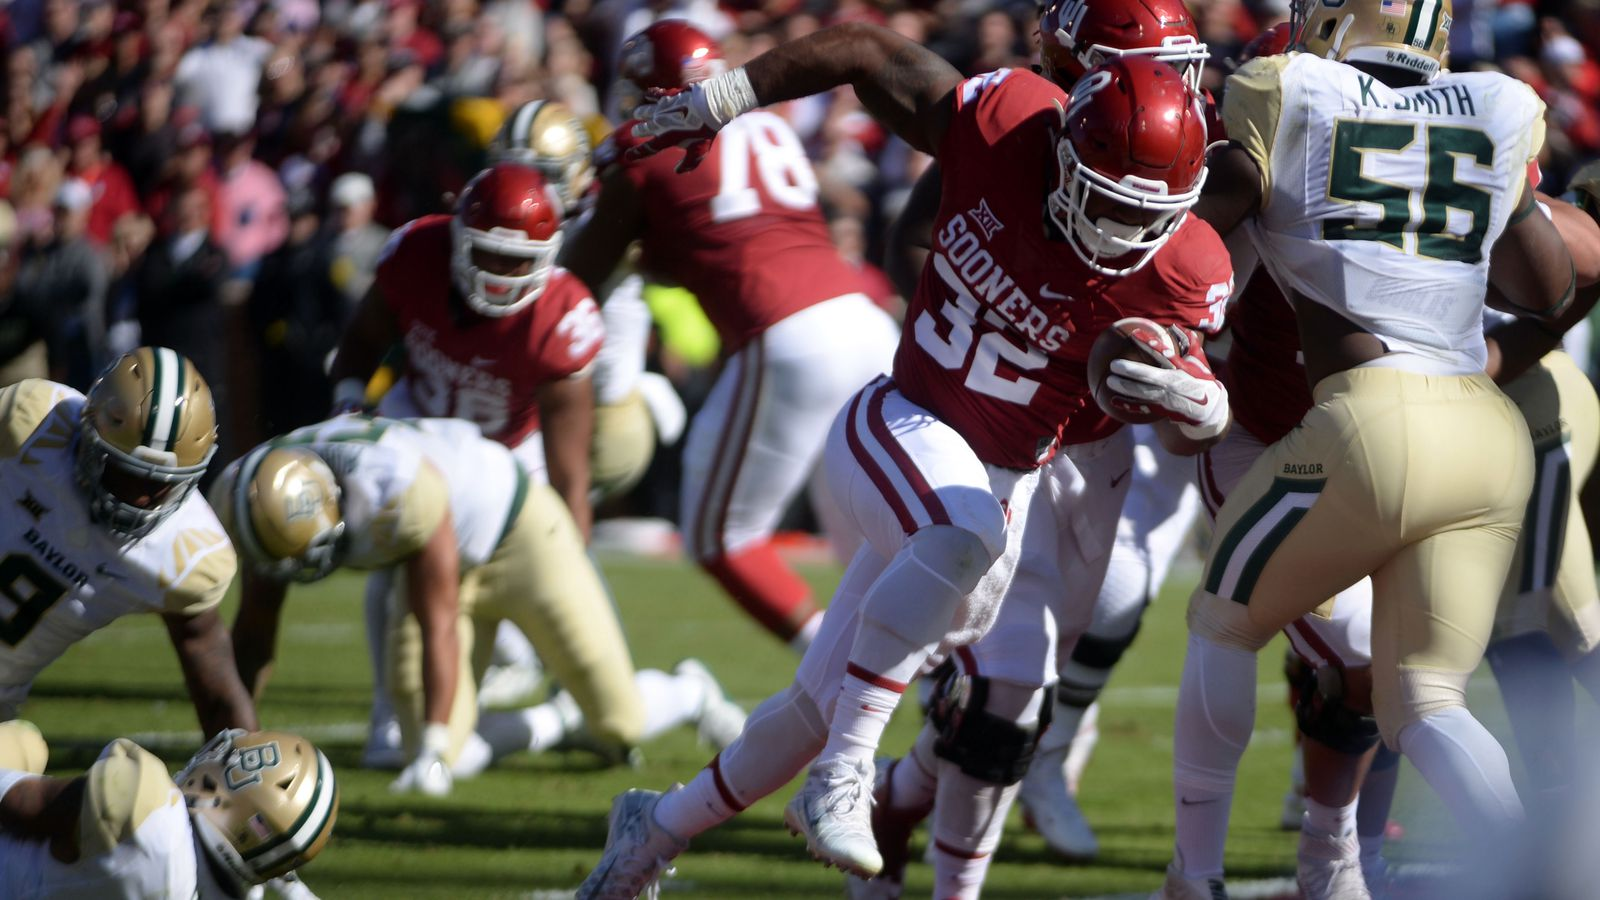 Nfl Draft Prospect Rb Samaje Perine Bolts From The Blue